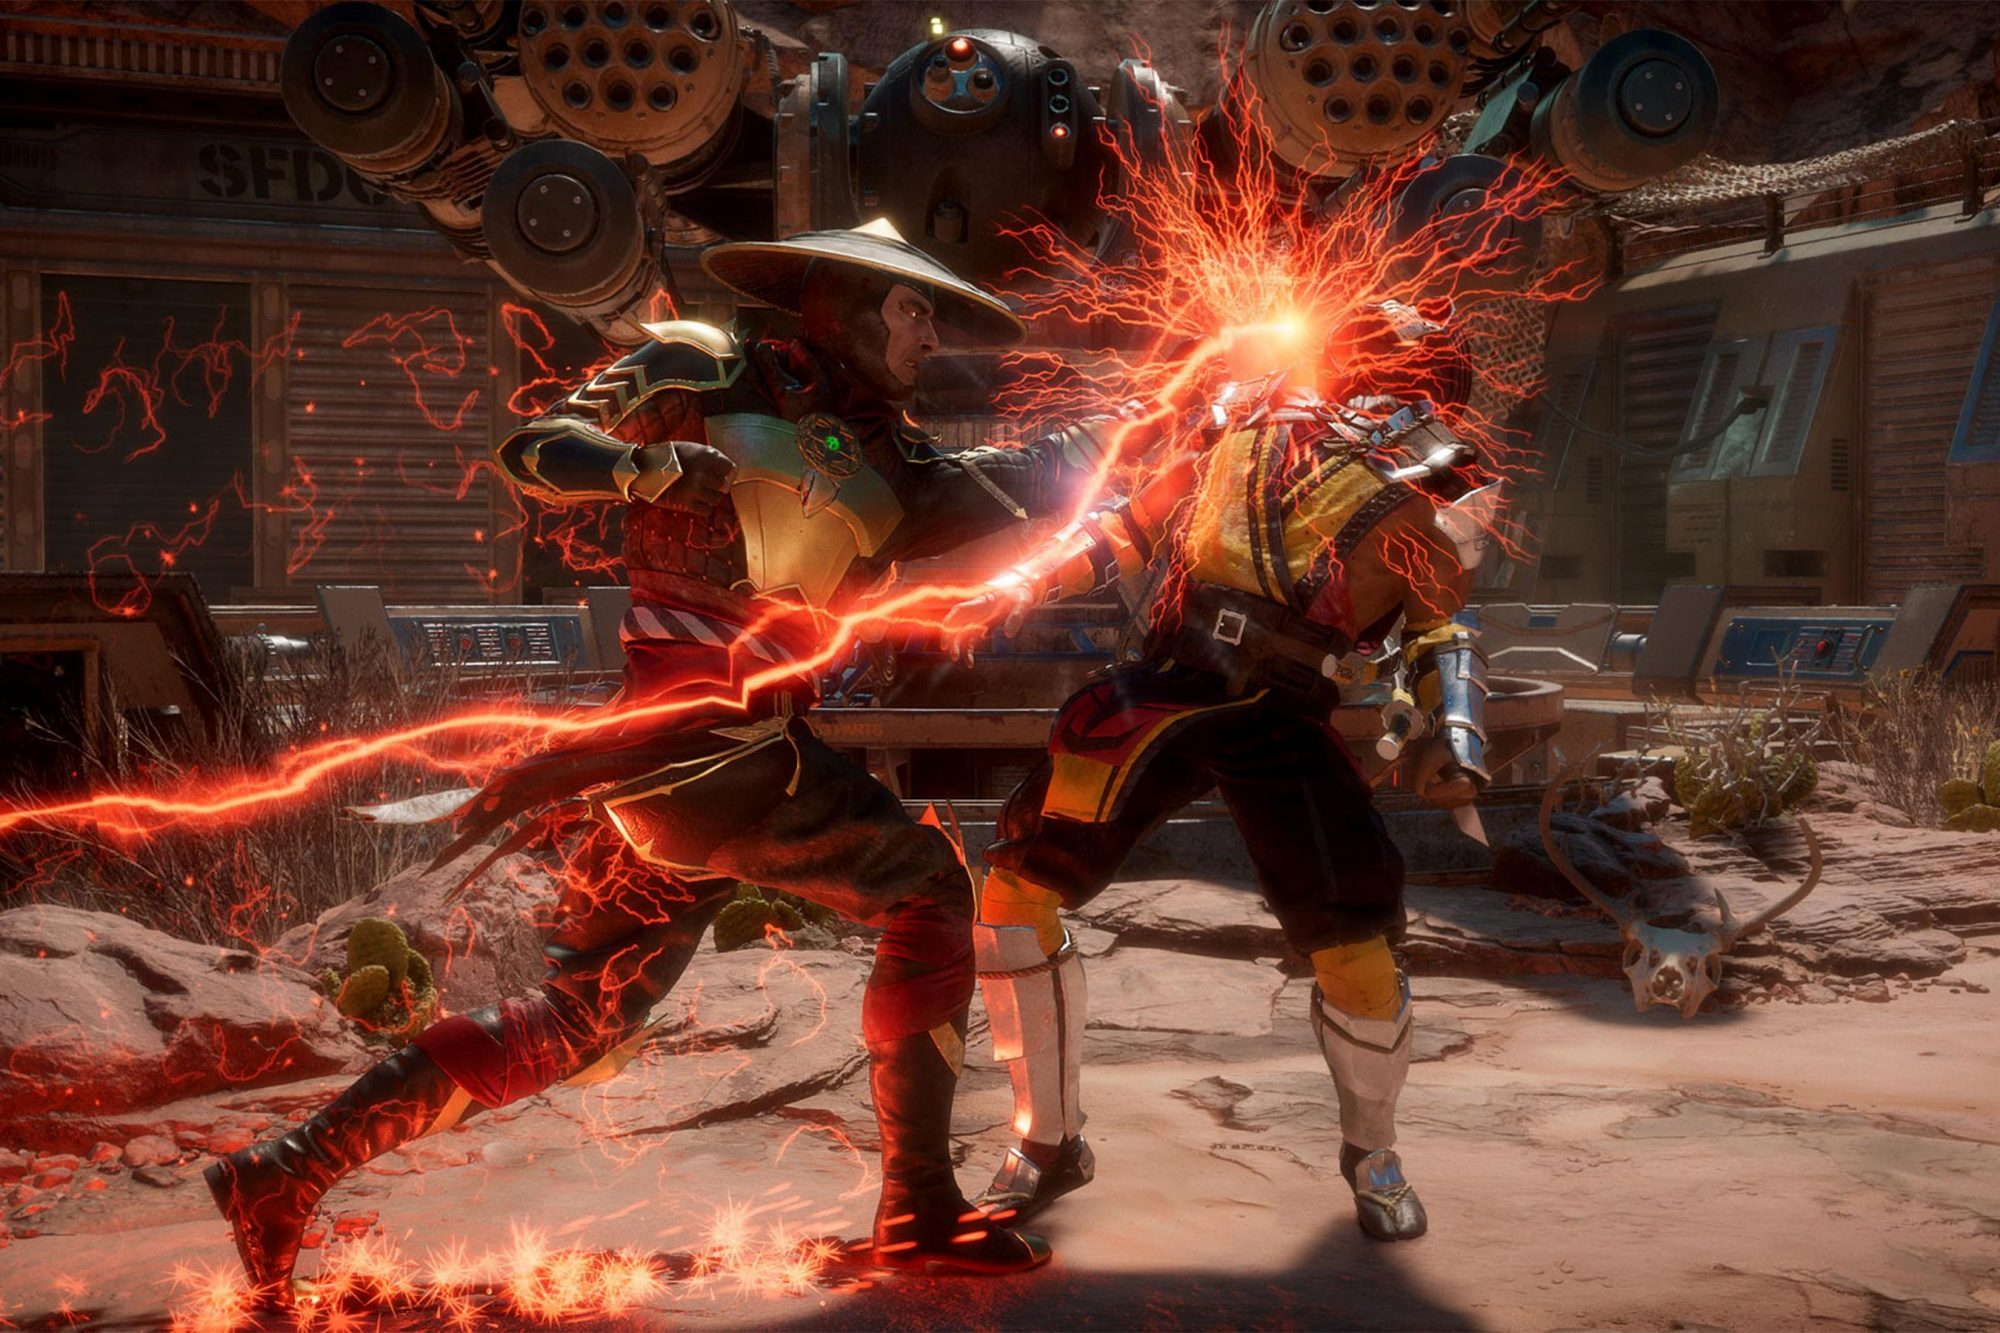 Mortal Kombat 11 video game Raiden and Scorpion CR: NetherRealm Studios/Warner Bros. Interactive Entertainment